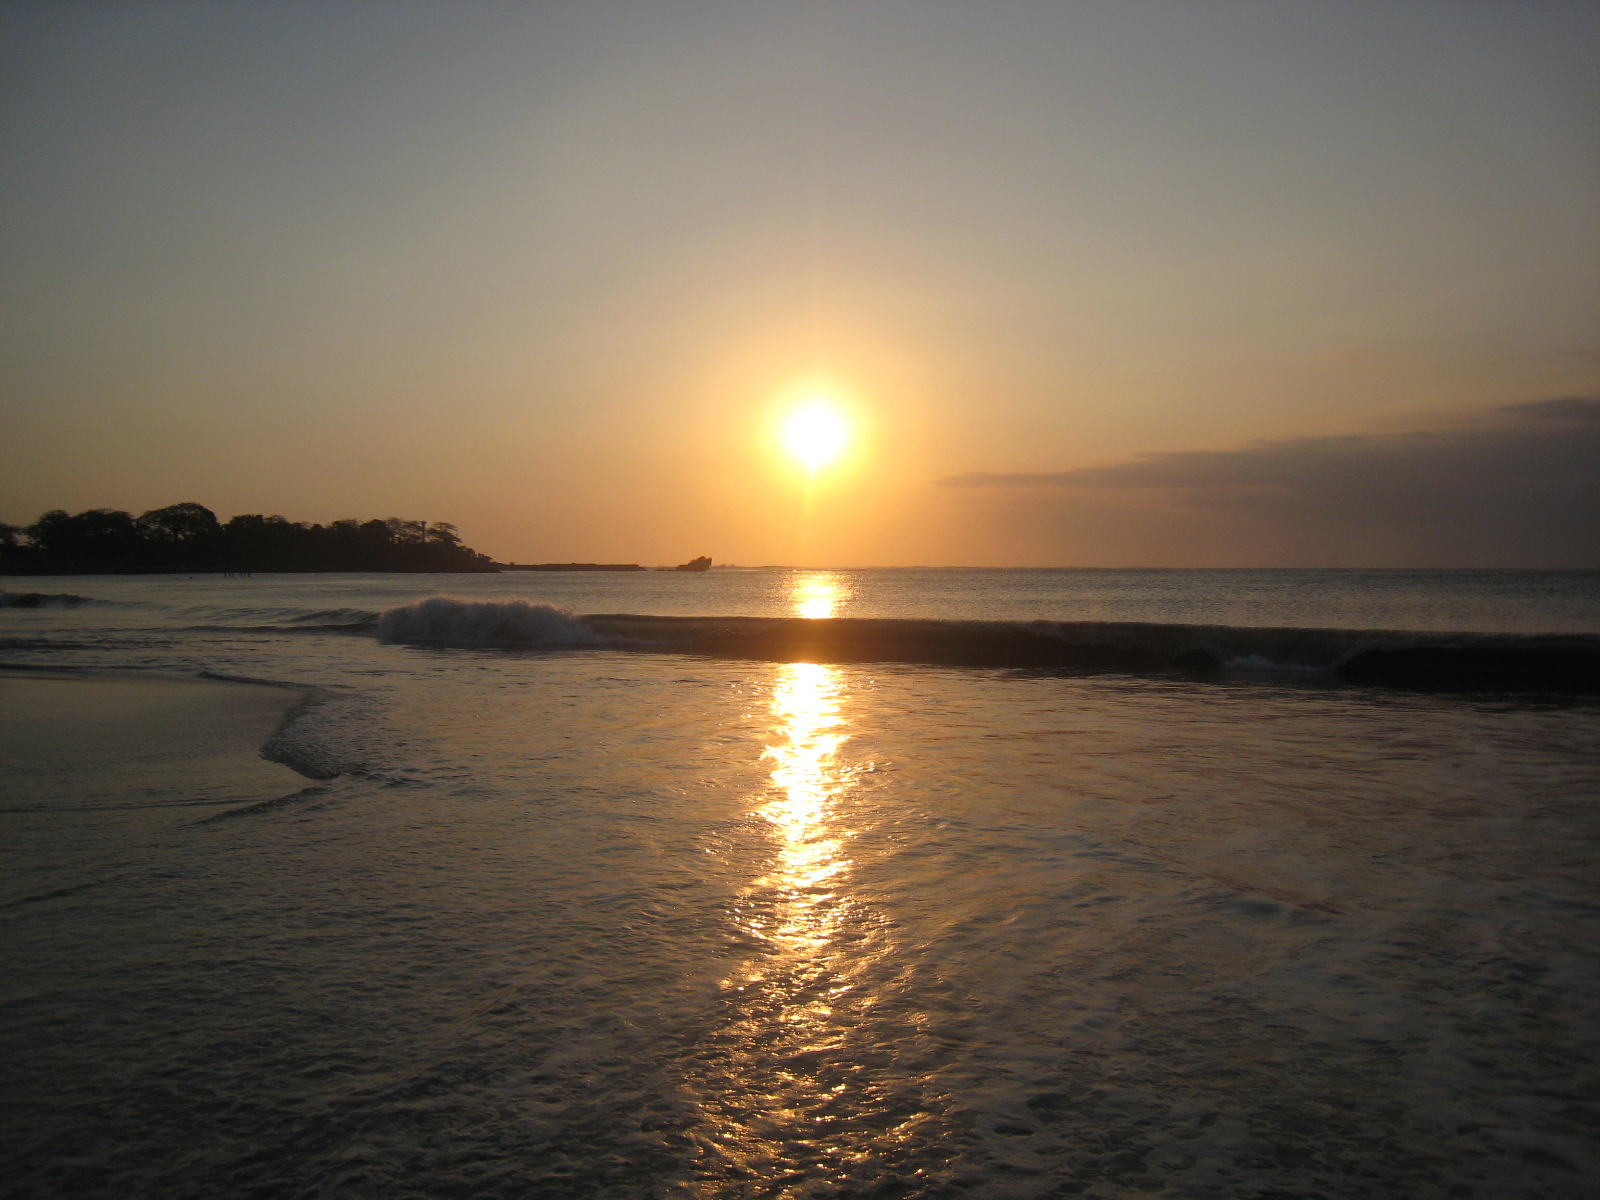 Blog of My Picture: Sunset In Bali Beach